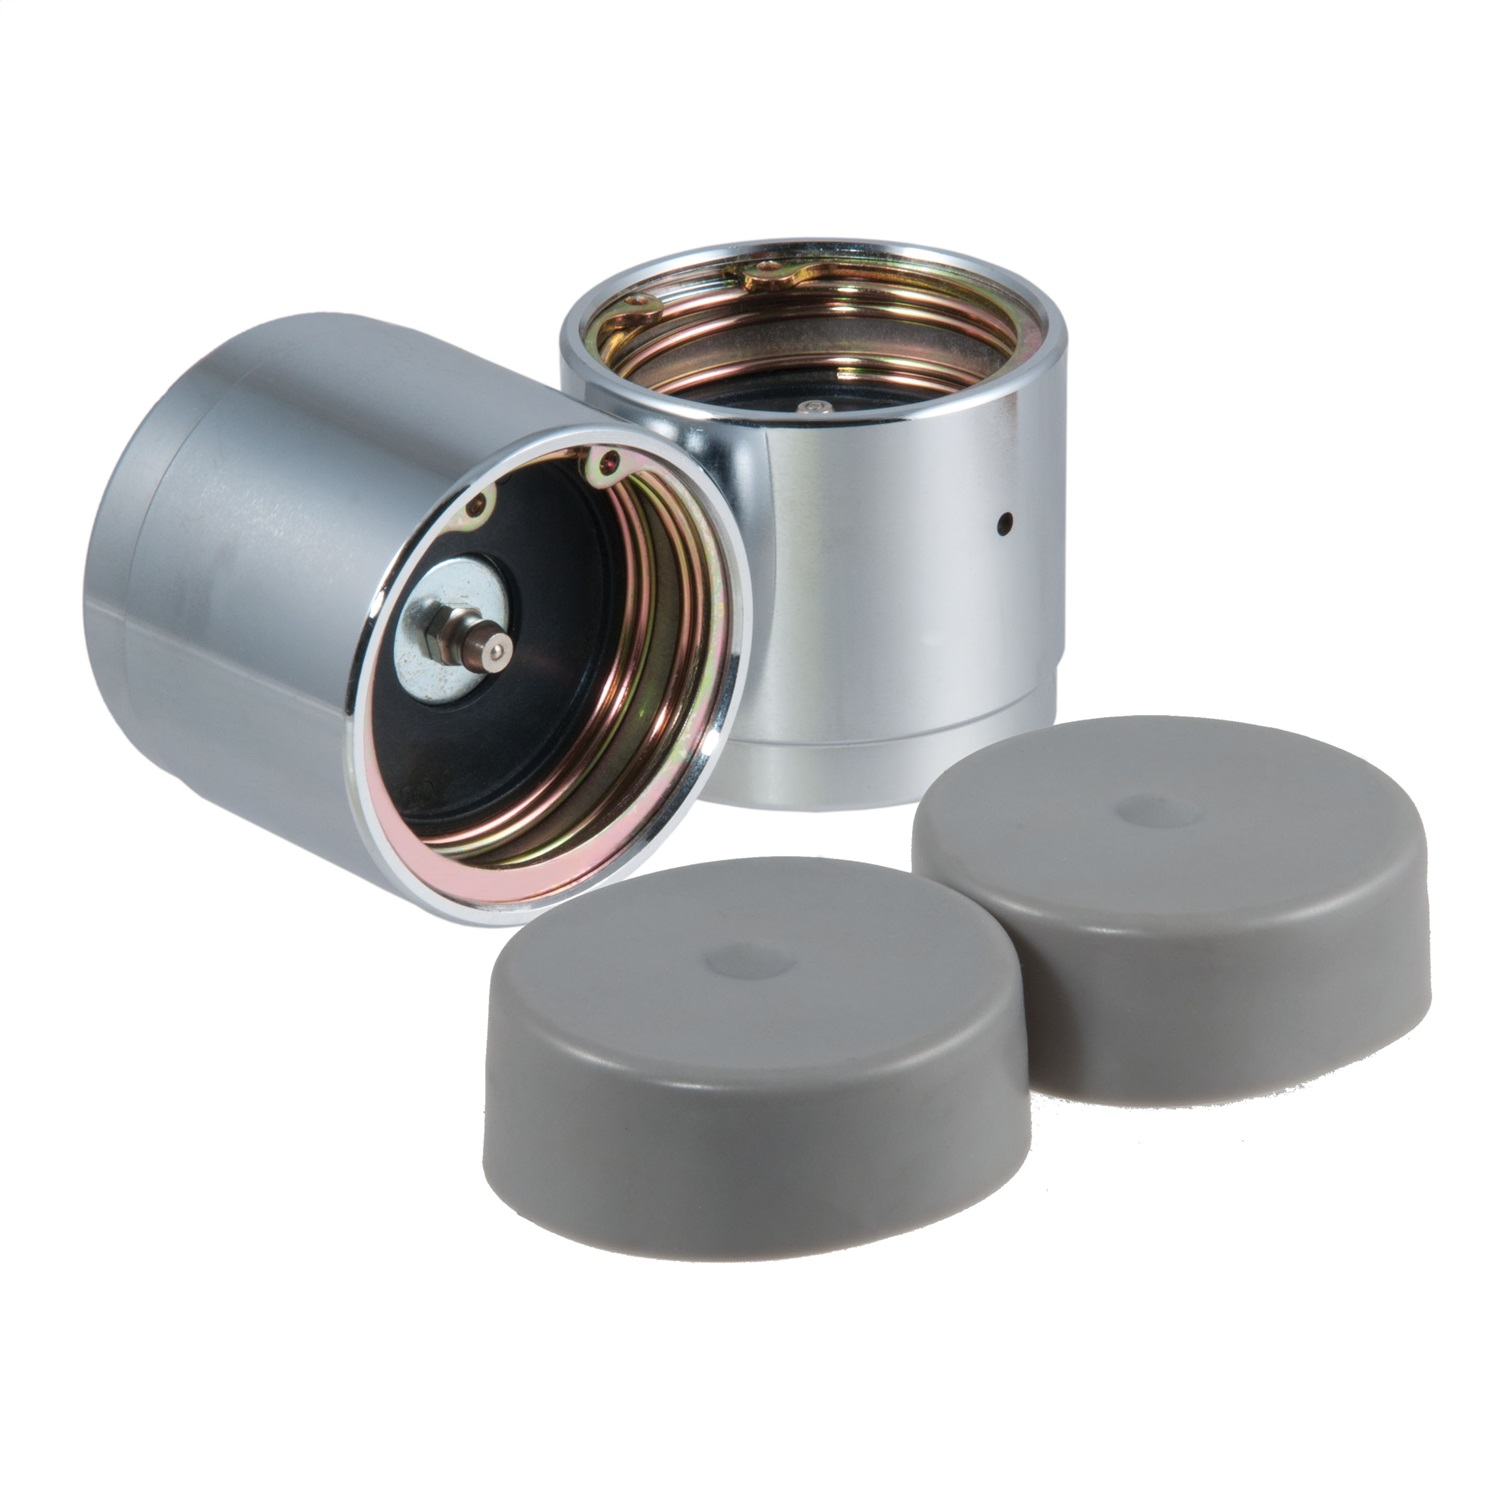 curt-manufacturing-22232-bearing-protectors-fits